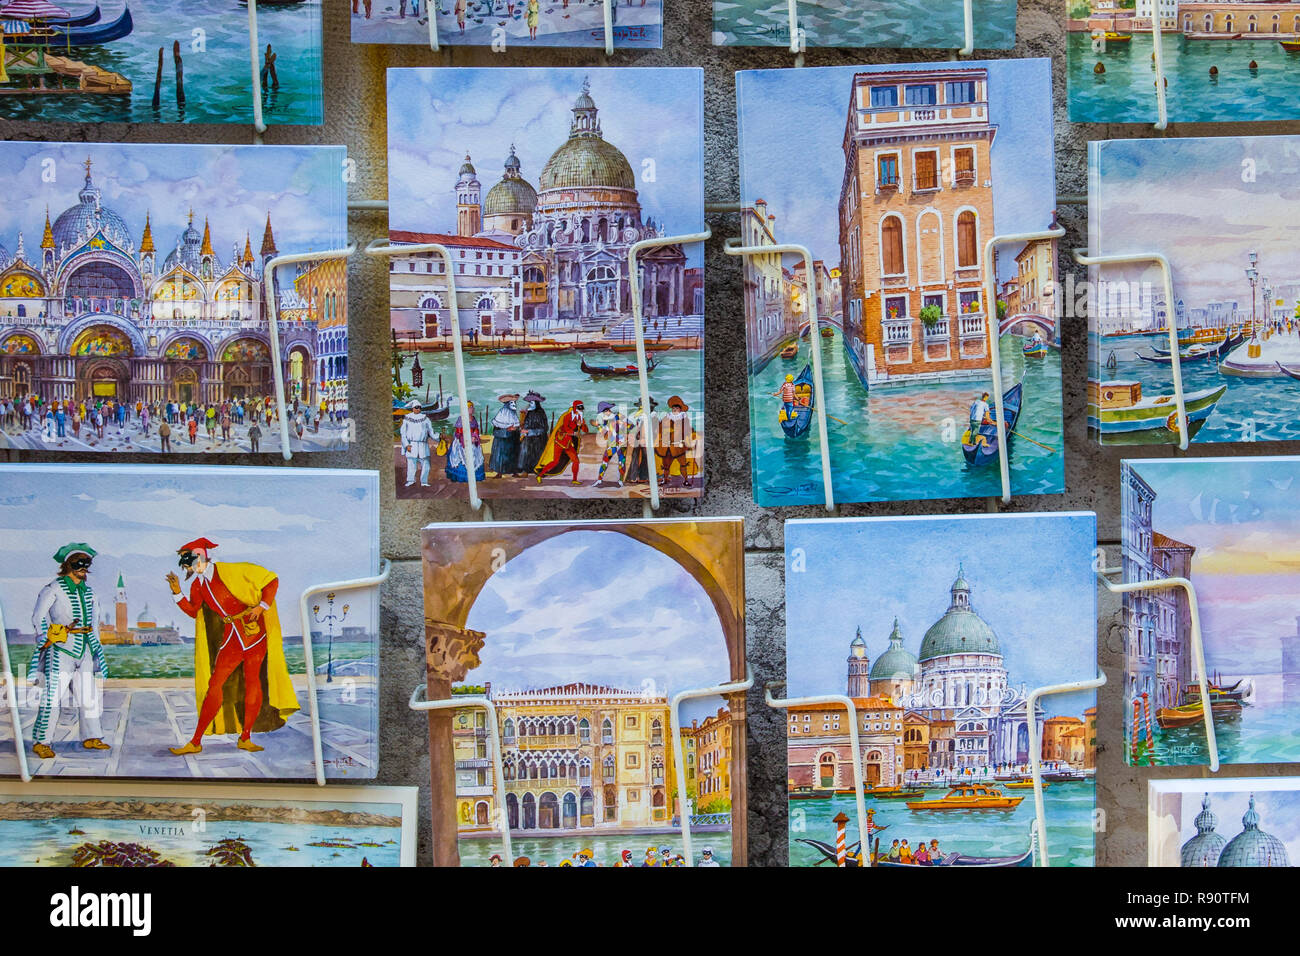 Venice, Italy - October 29, 2016: Postcards or sale in Venice Italy - Stock Image